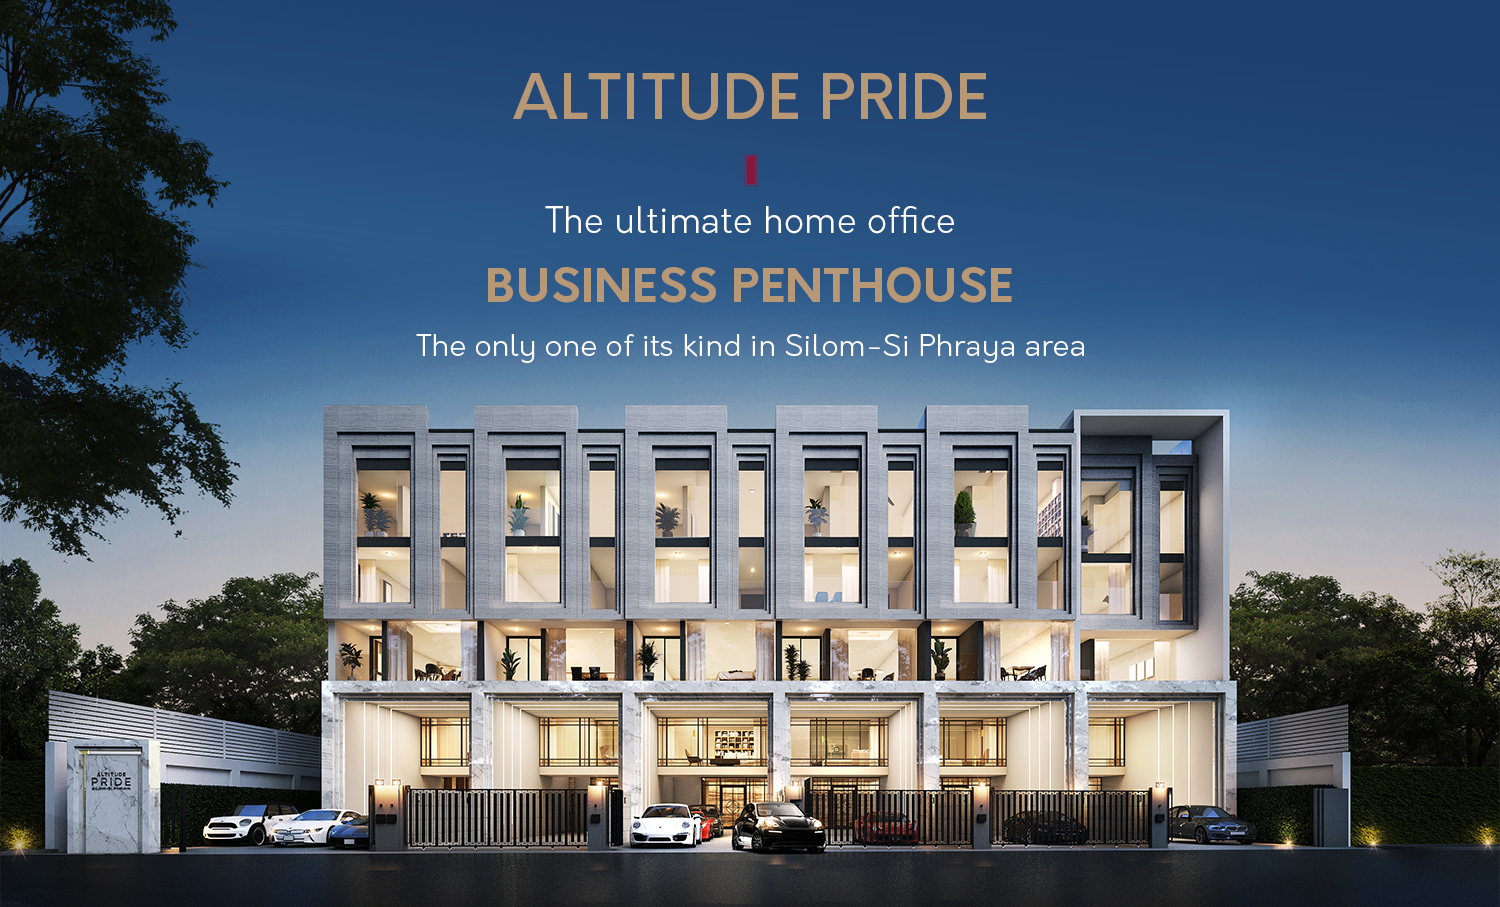 Altitude Pride -  The Ultimate Home Office, Business Penthouse. The only one of its kind in Silom -  Si Phraya area